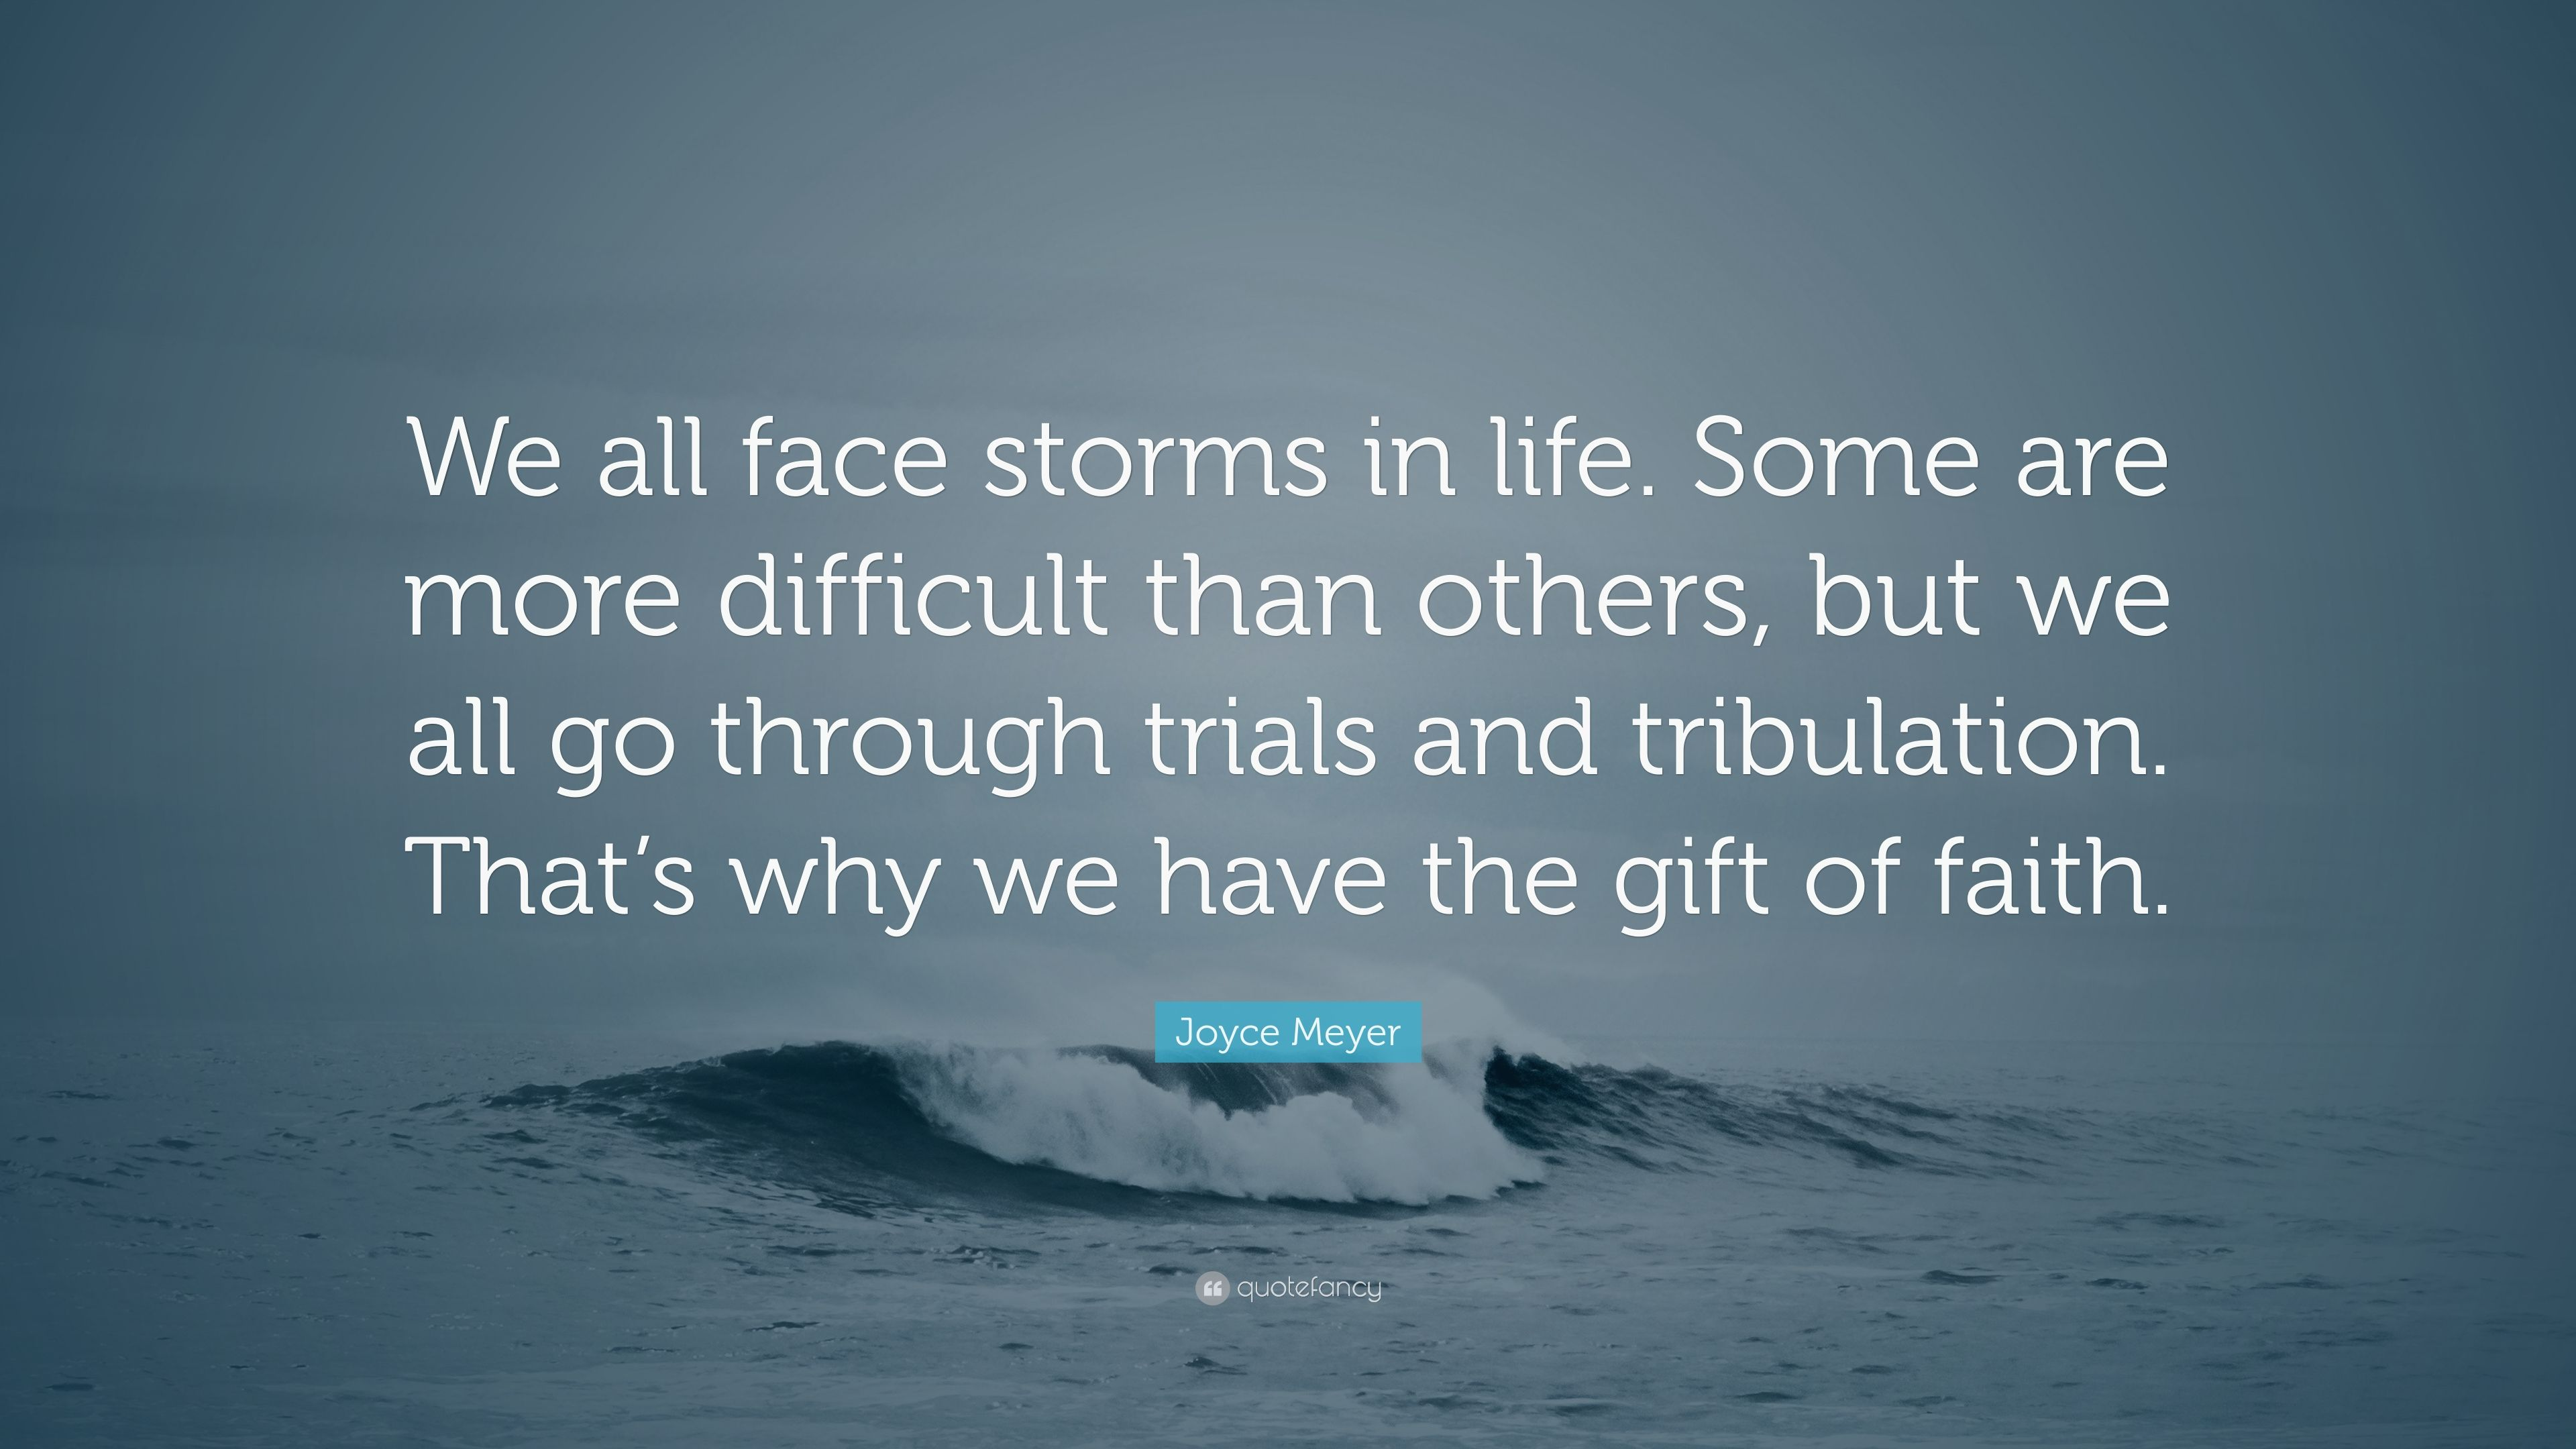 Joyce Meyer Quote We All Face Storms In Life Some Are More